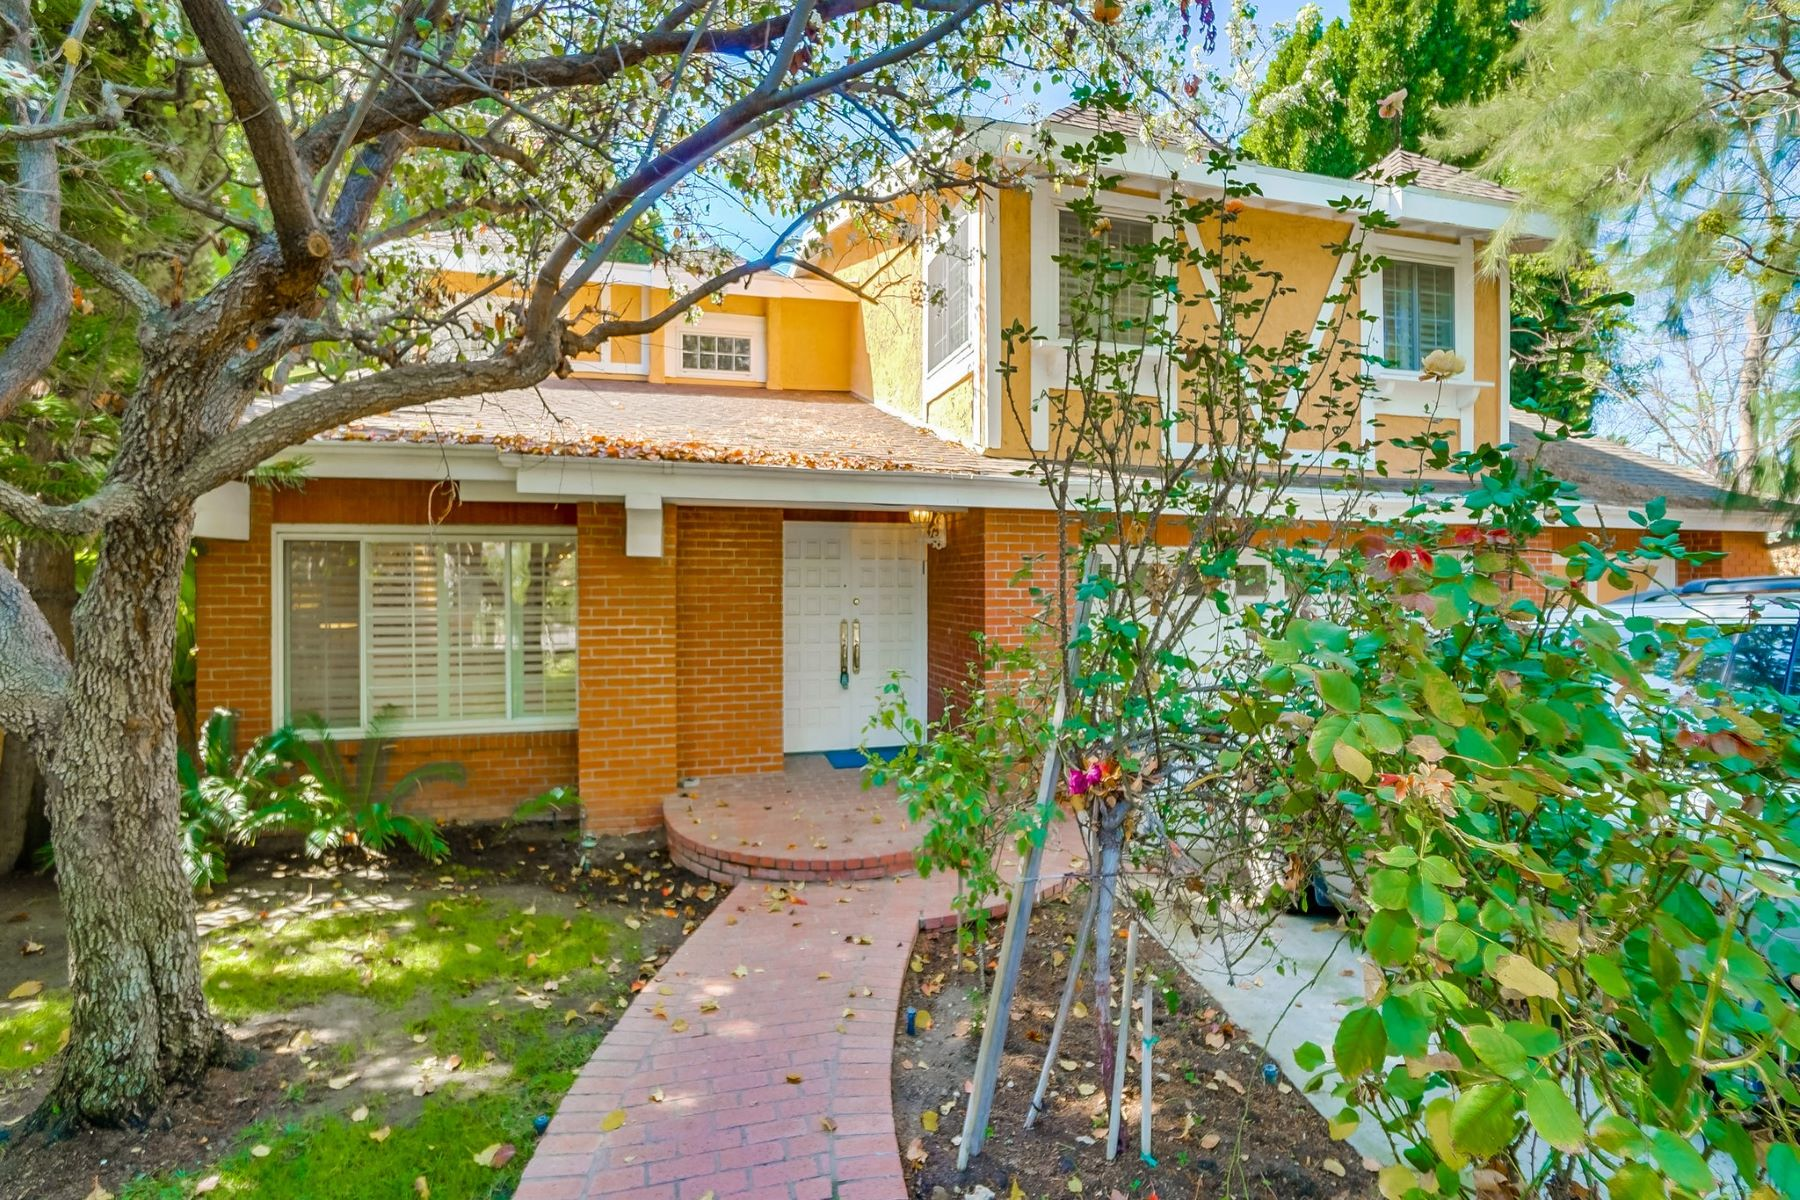 Single Family Homes for Sale at 13134 Albers Street Sherman Oaks, California 91401 United States